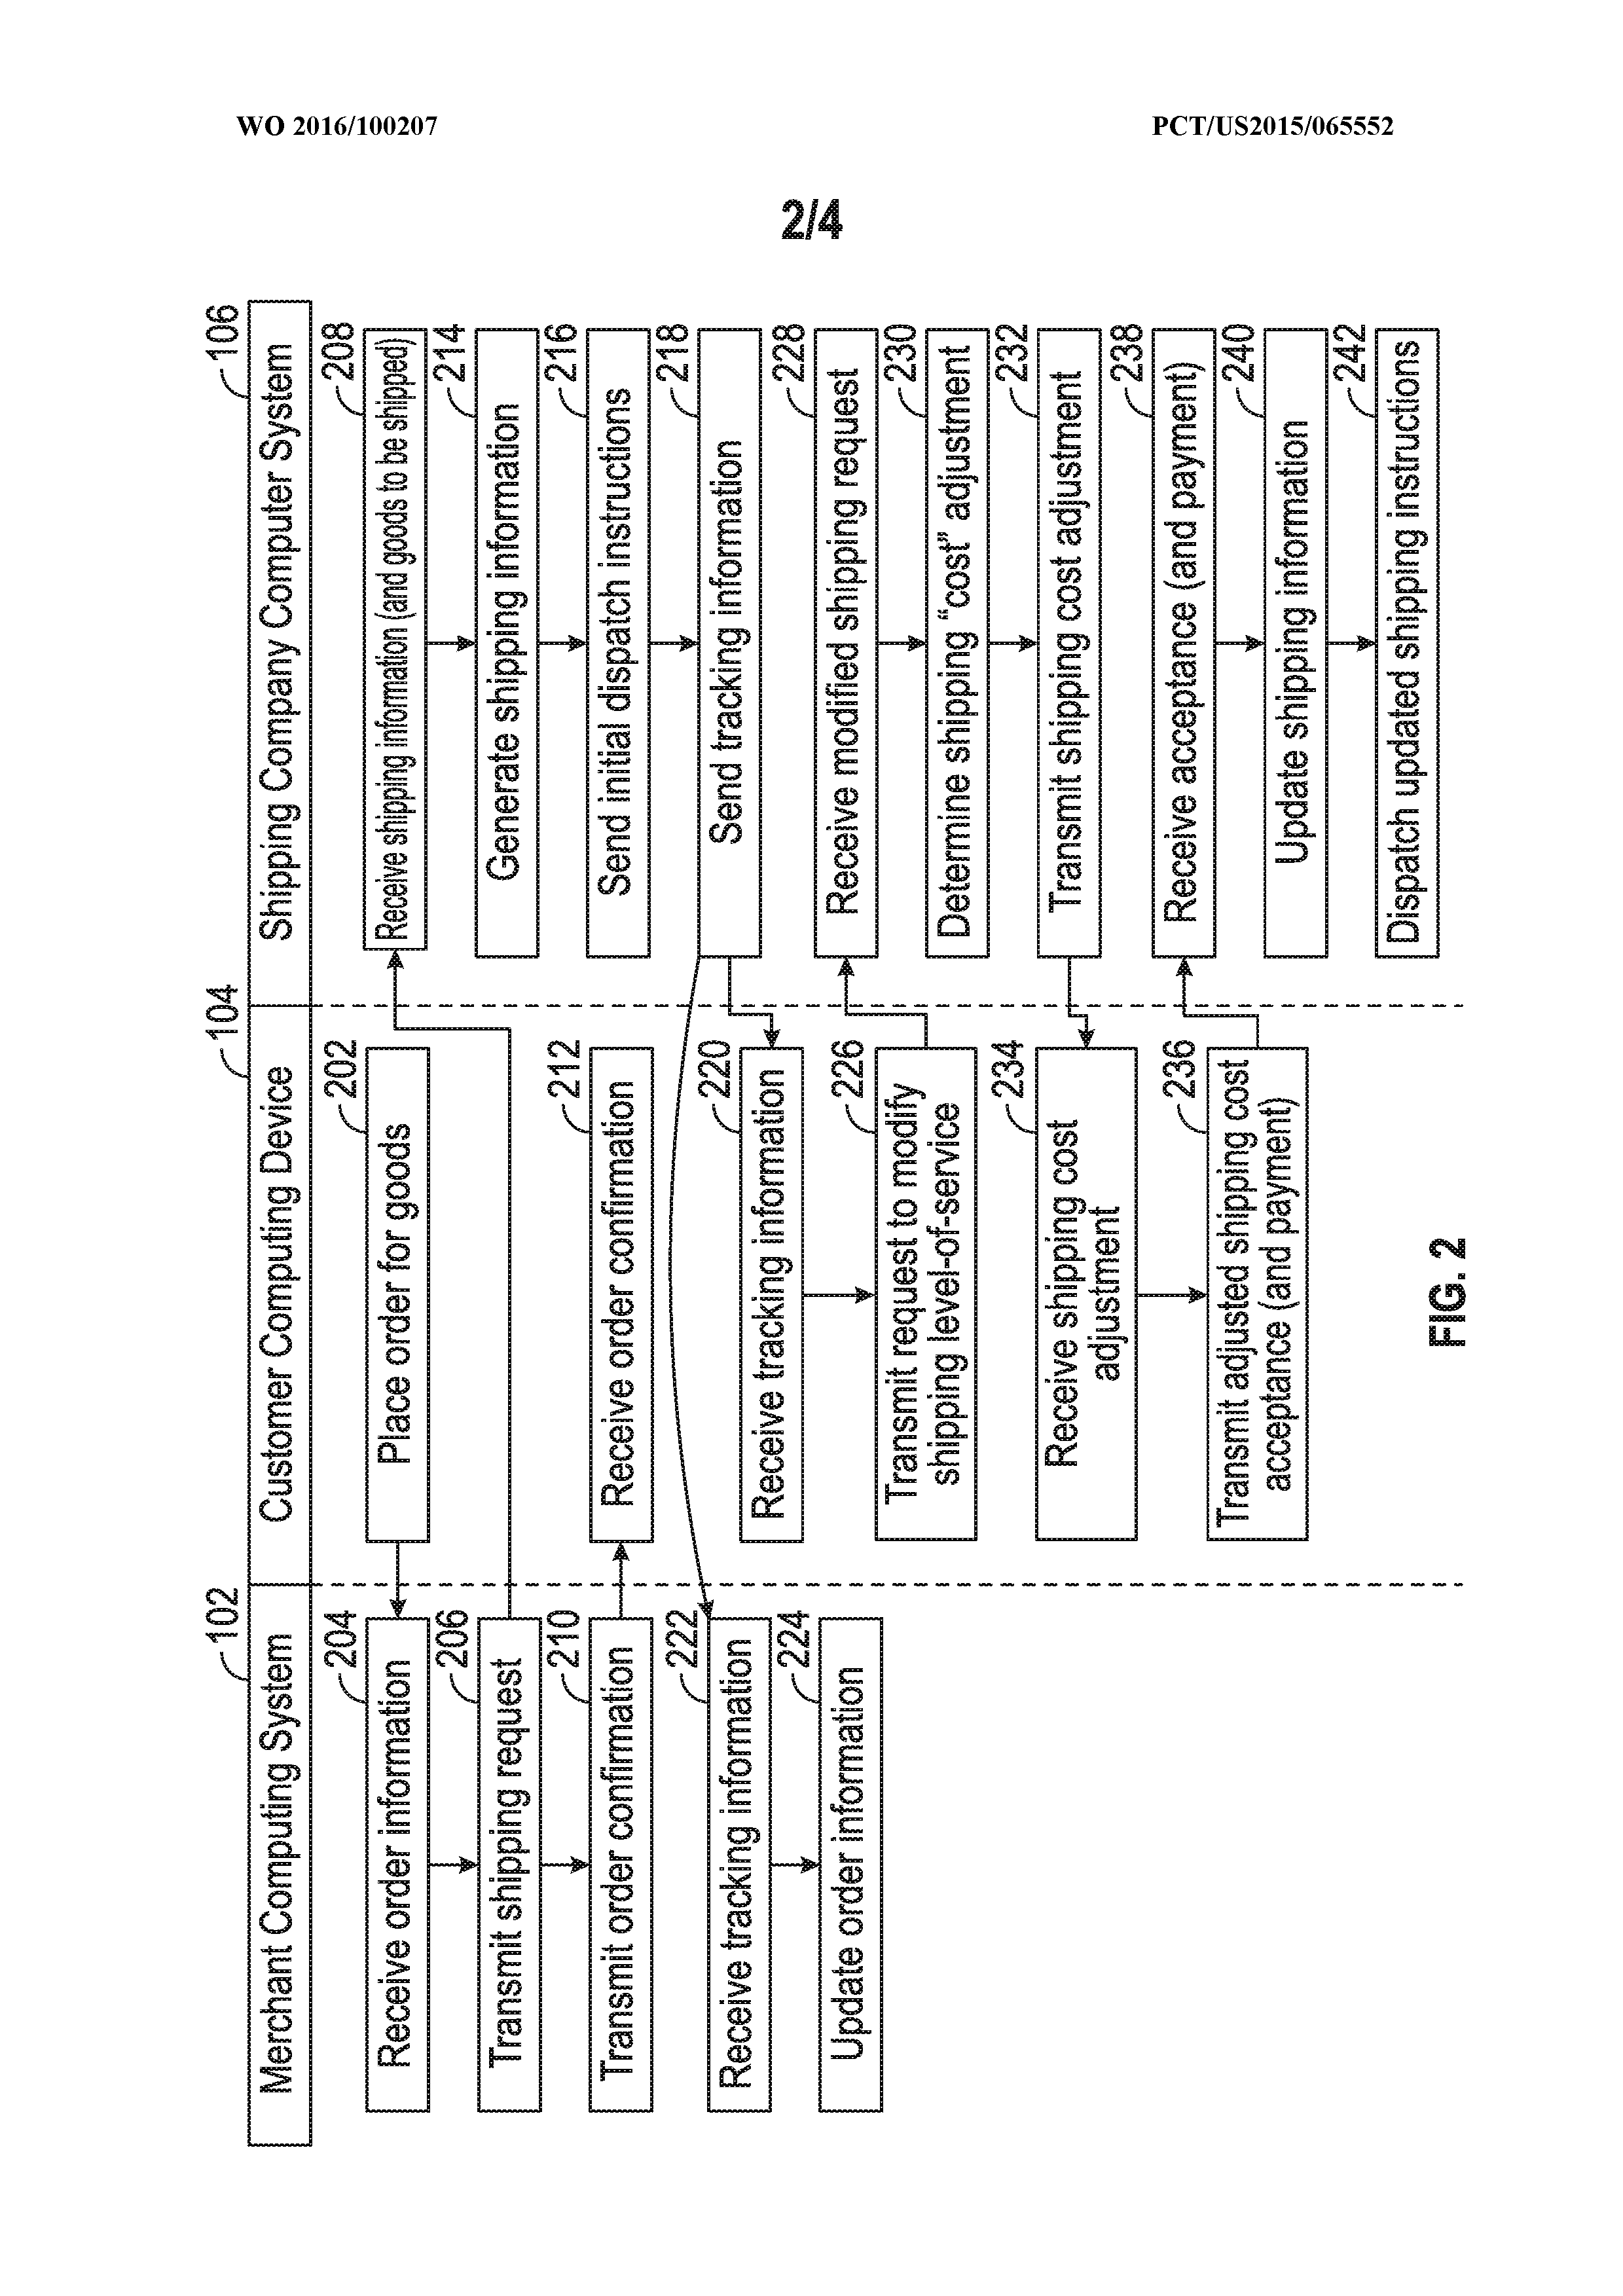 WO 2016/100207 A1 - Systems And Methods For Modifying